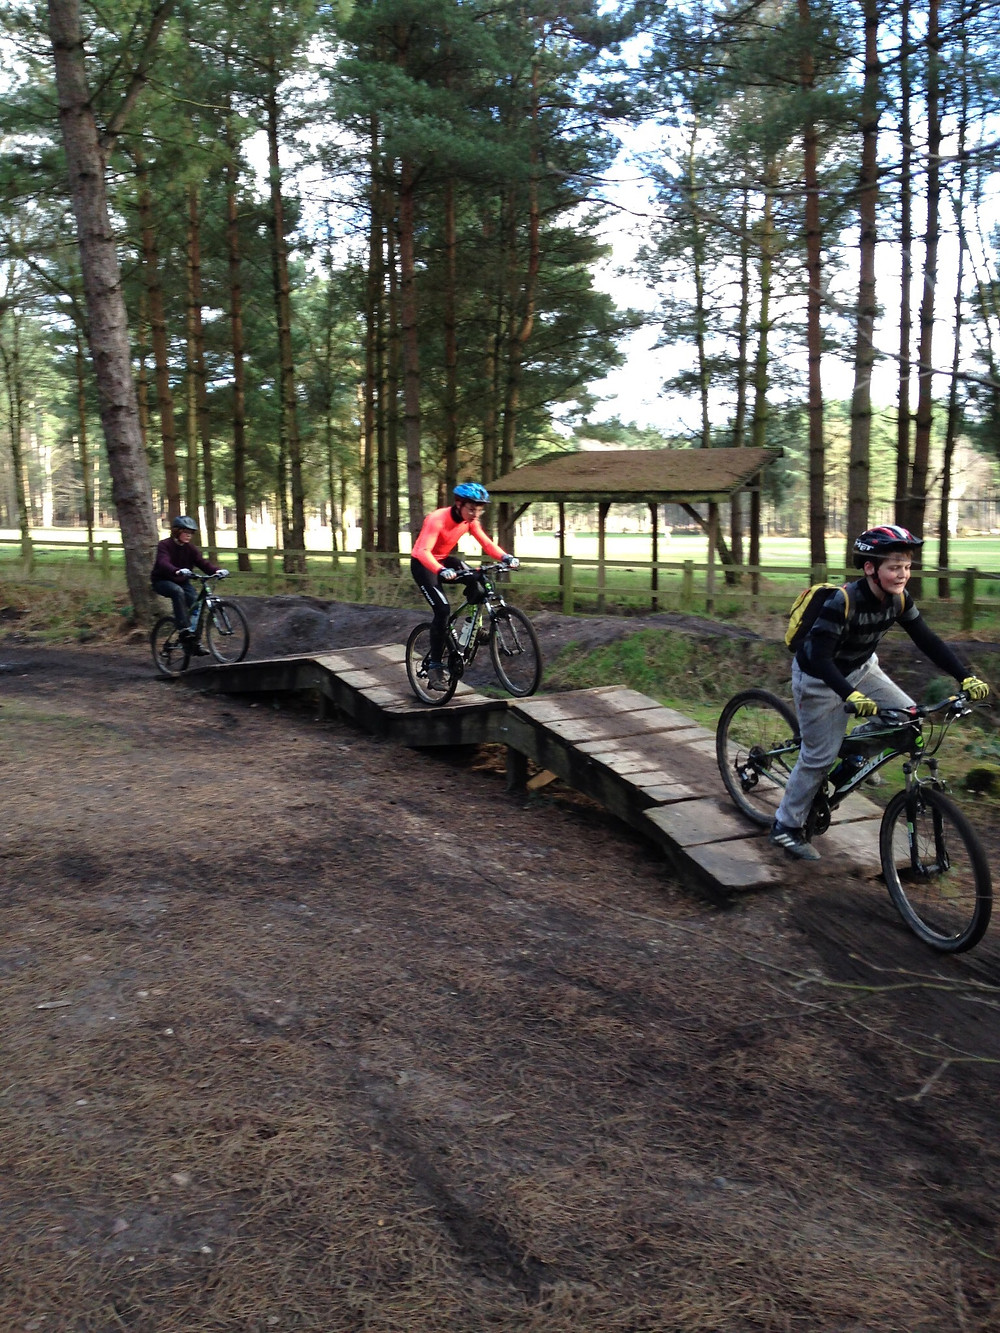 Miles and friends on Skills Track at Pines